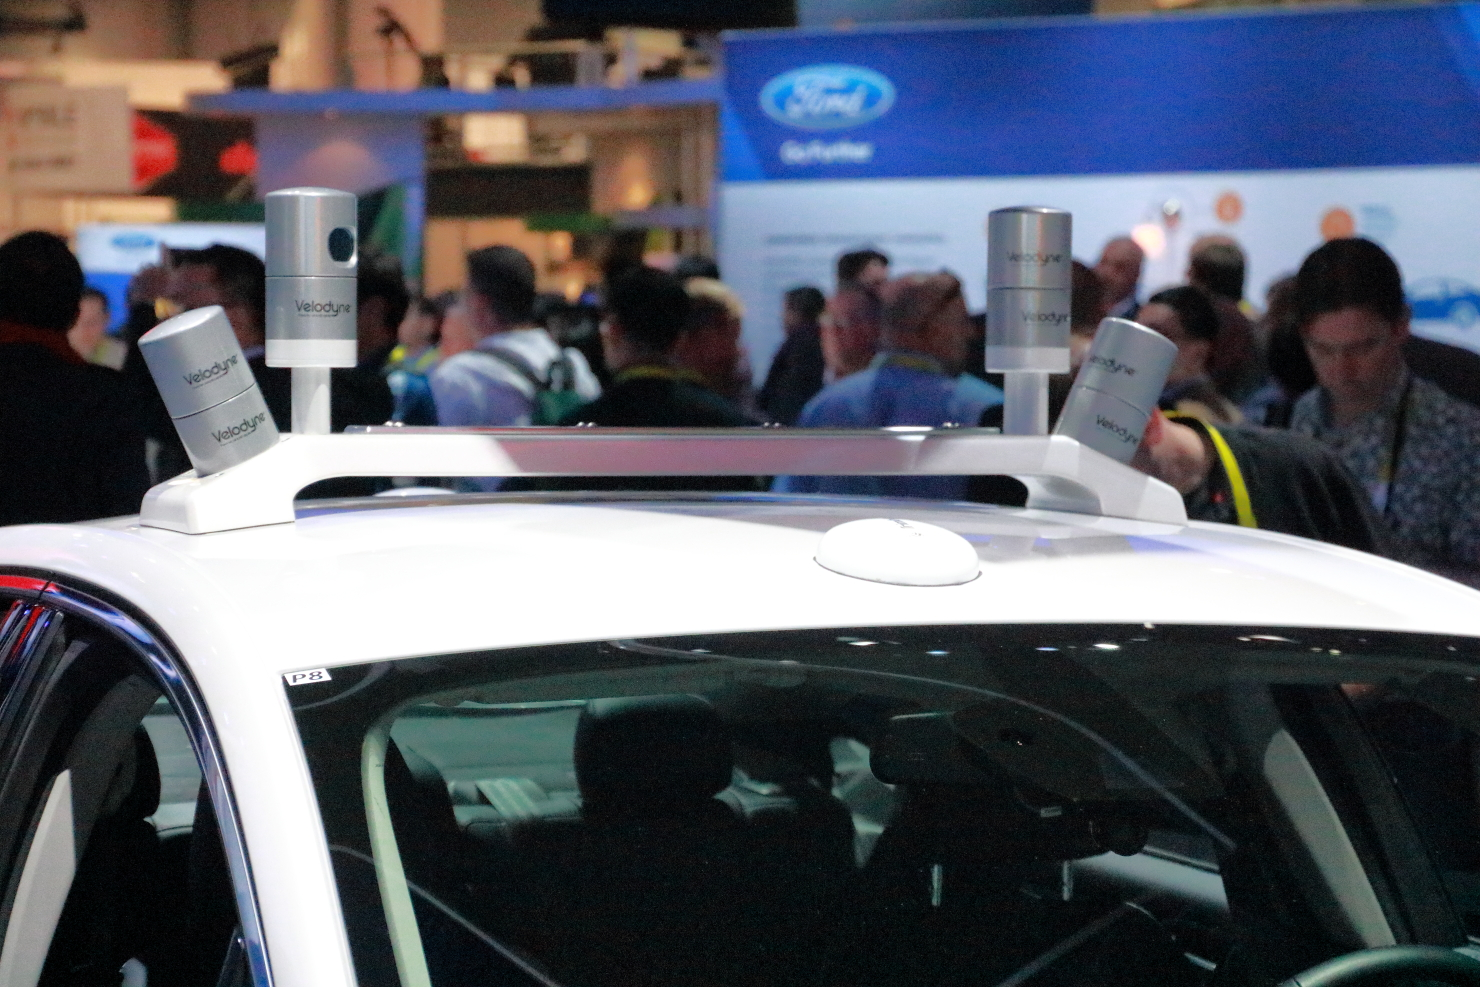 The Velodyne sensors are mounted on the roof the Ford Fusion Hybrid test vehicle.(photo by João-Pierre S. Ruth)